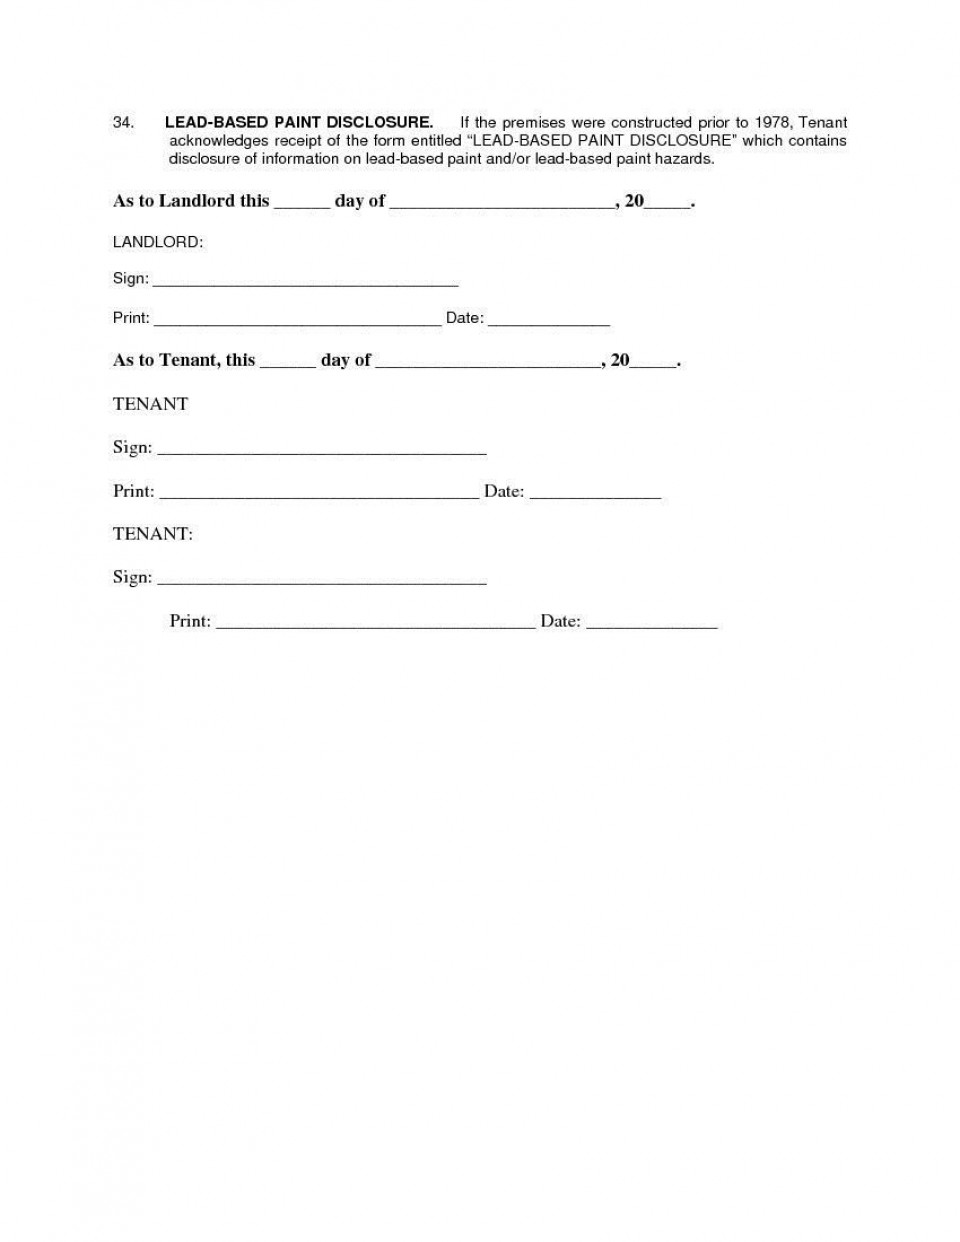 007 Remarkable Apartment Lease Agreement Form Texa High Def 960